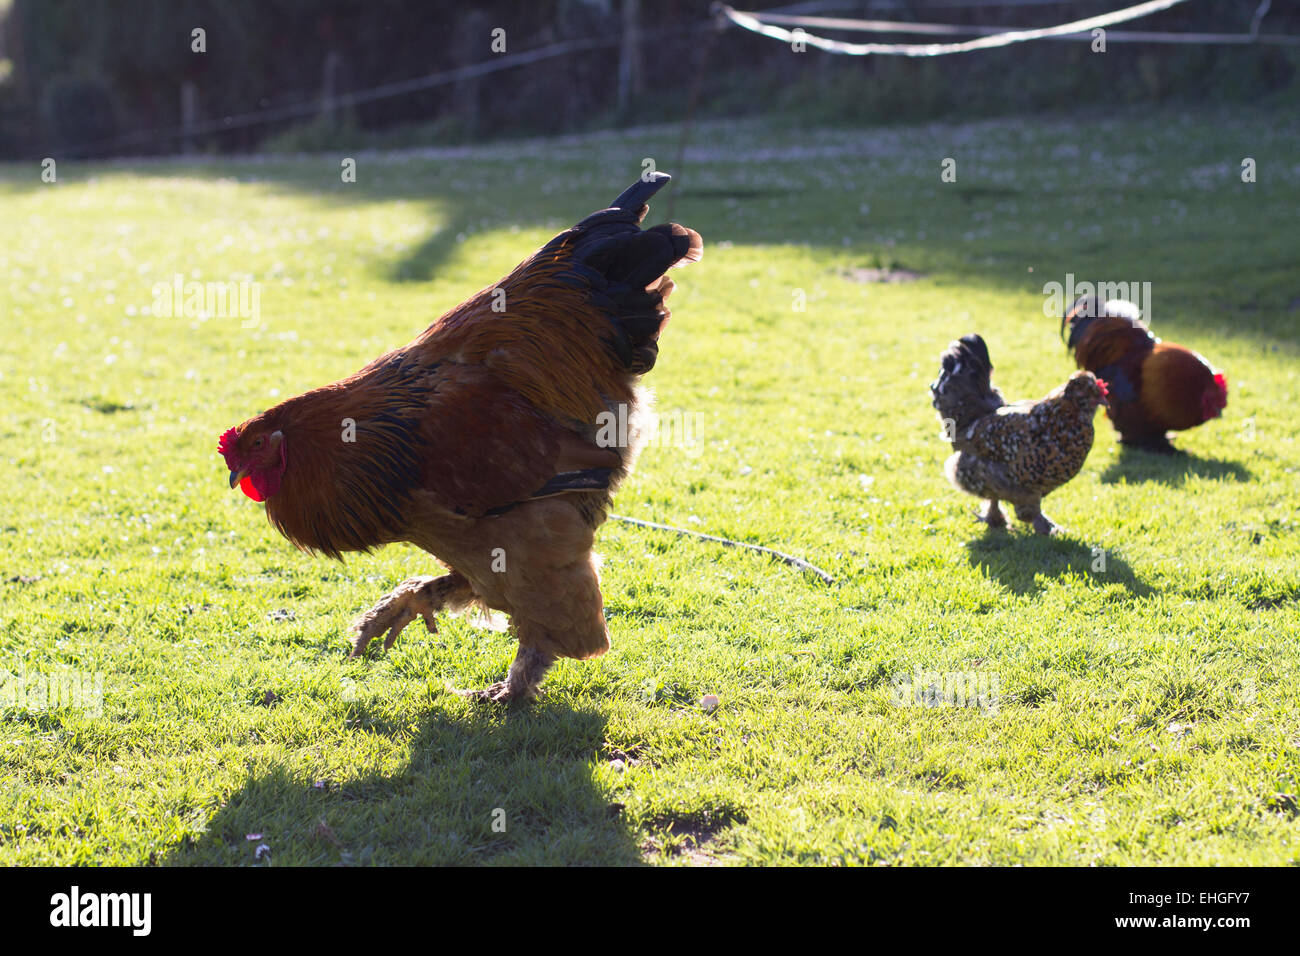 Rooster and hens. - Stock Image